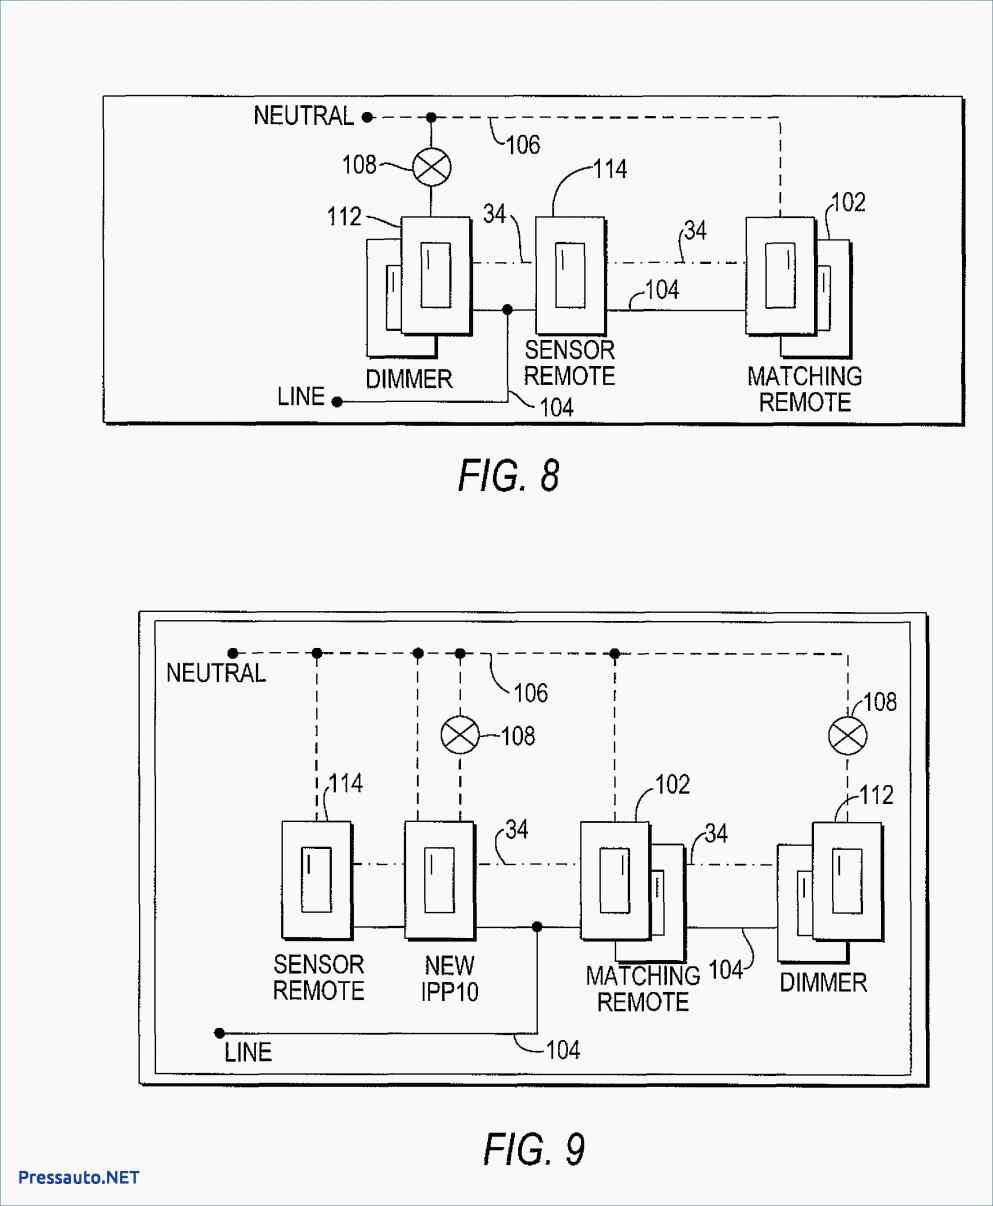 lutron diva 3 way dimmer wiring diagram Download-Wiring Diagram 3 Way Switch Beautiful Lutron Diva 3 Way Dimmer Wiring Diagram Wiring 16-s